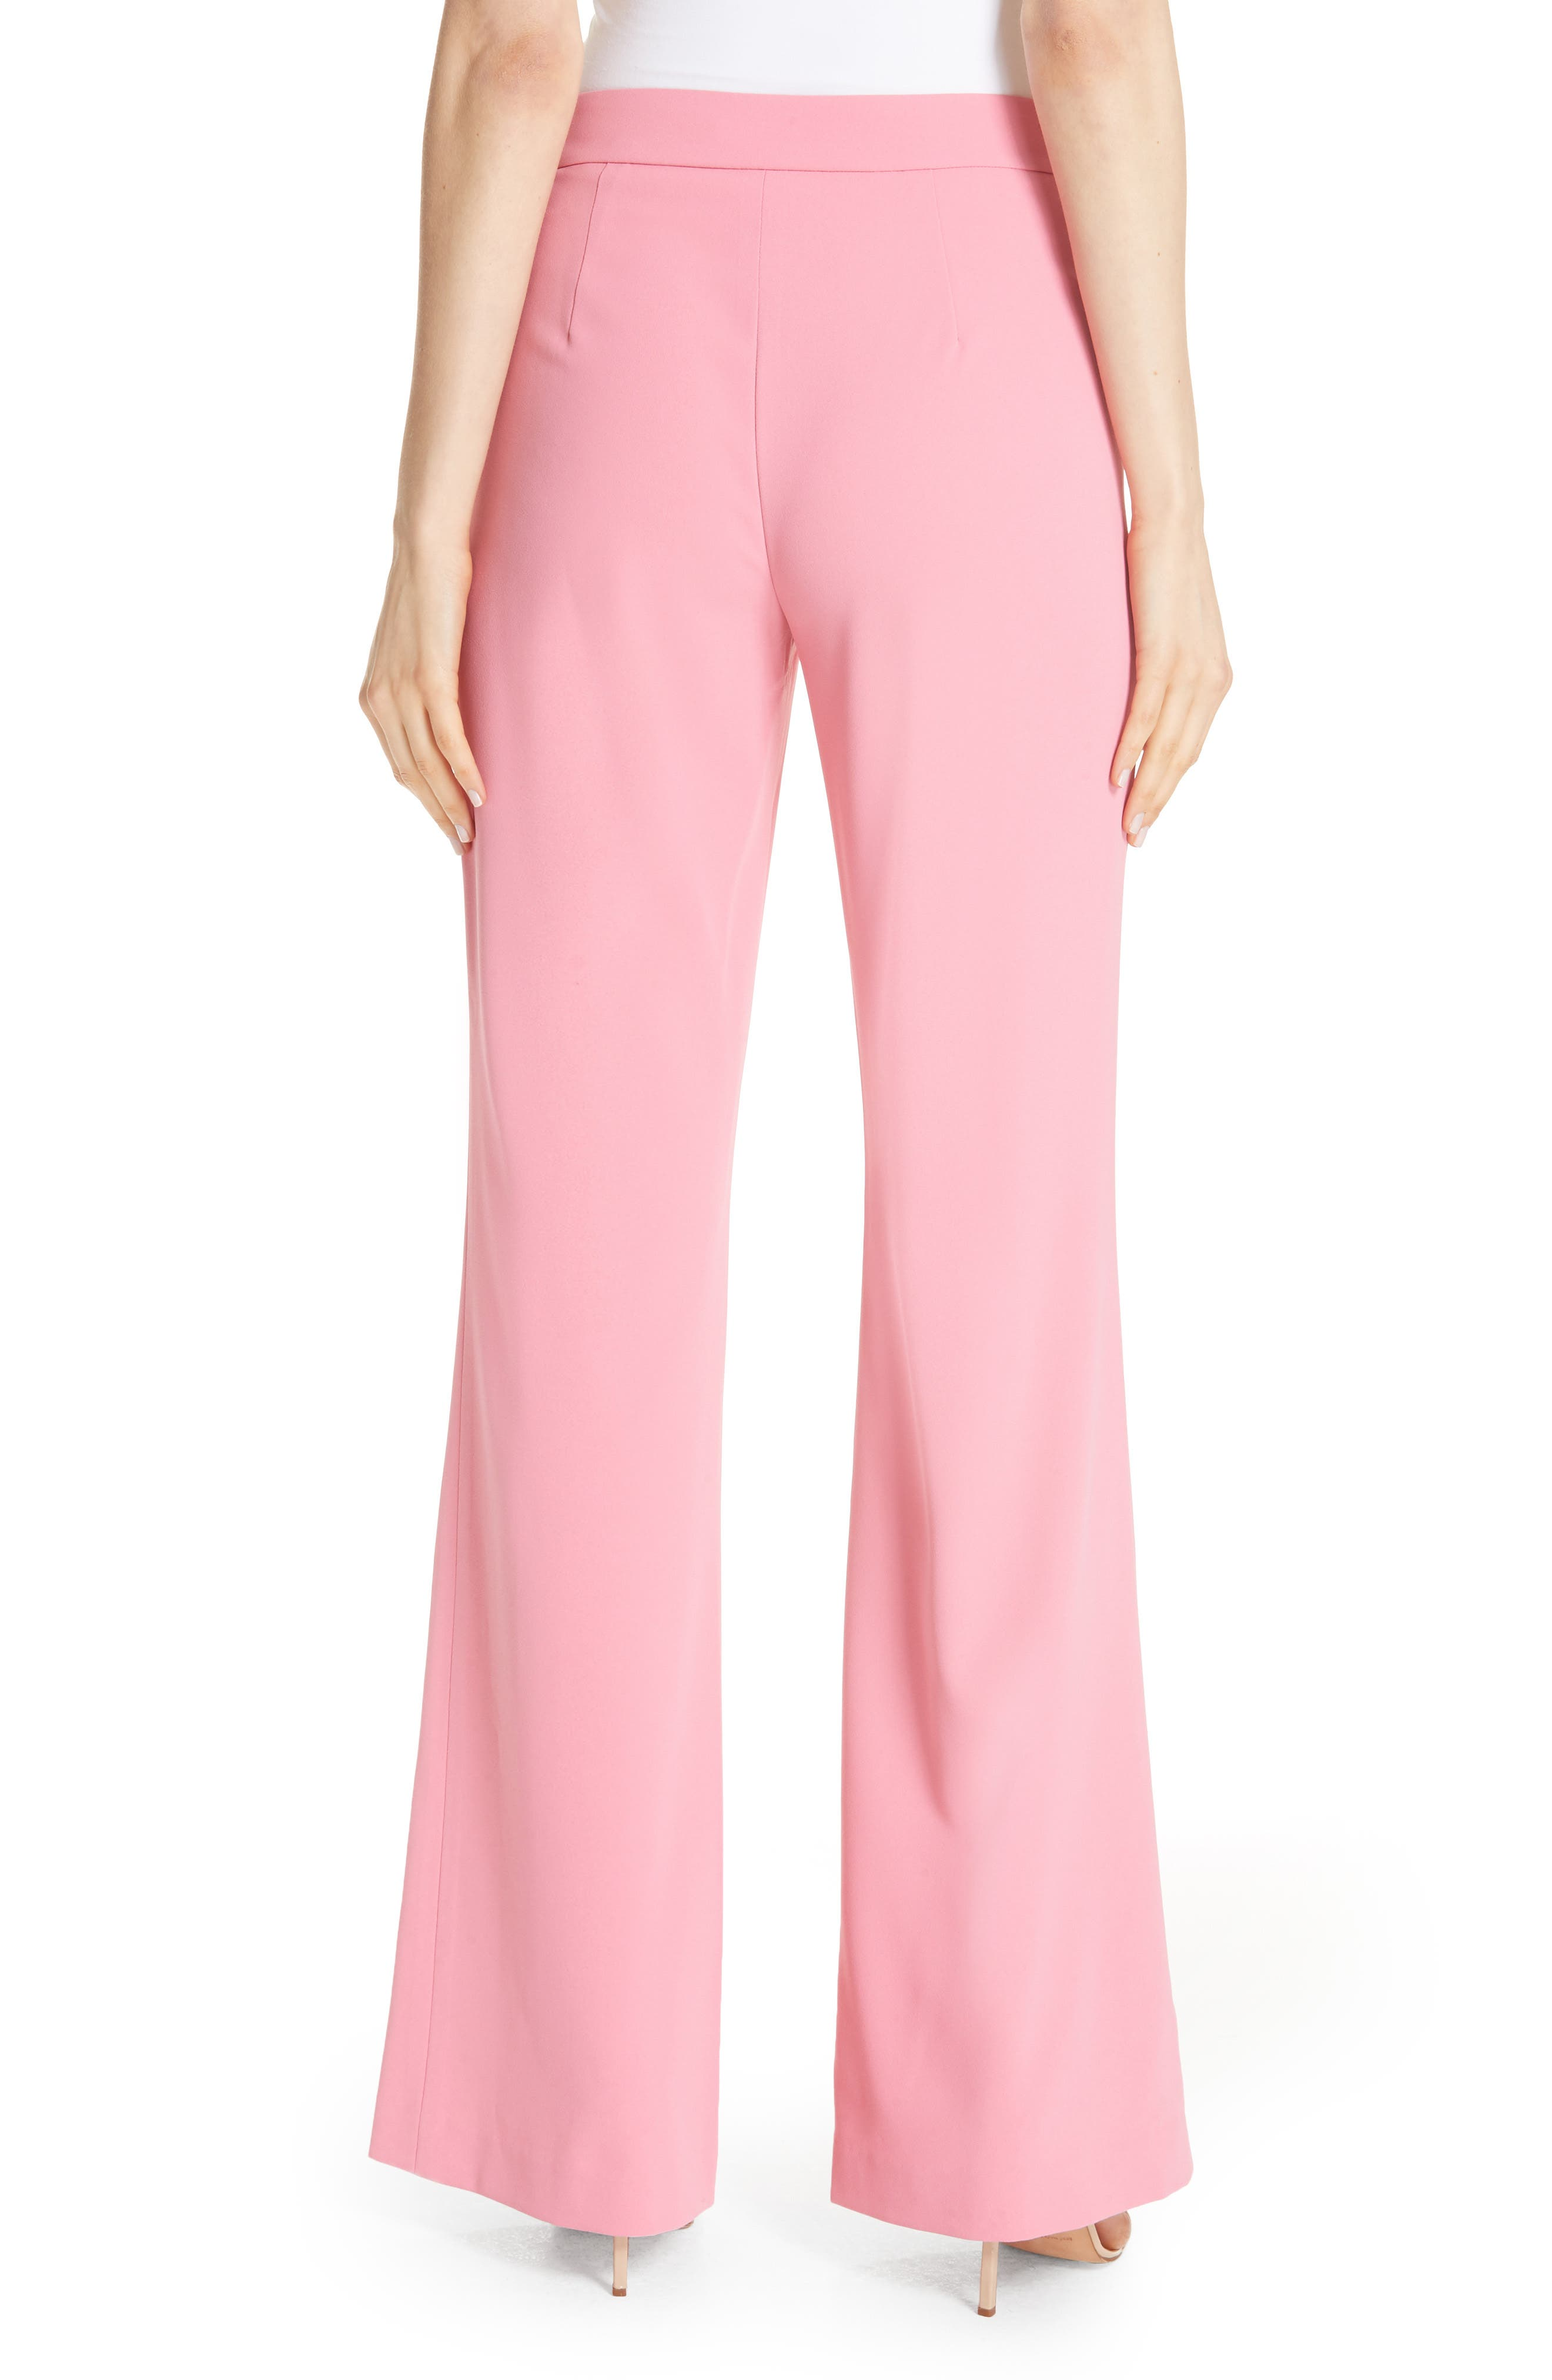 Jalisa High Waist Flare Pants,                             Alternate thumbnail 2, color,                             650